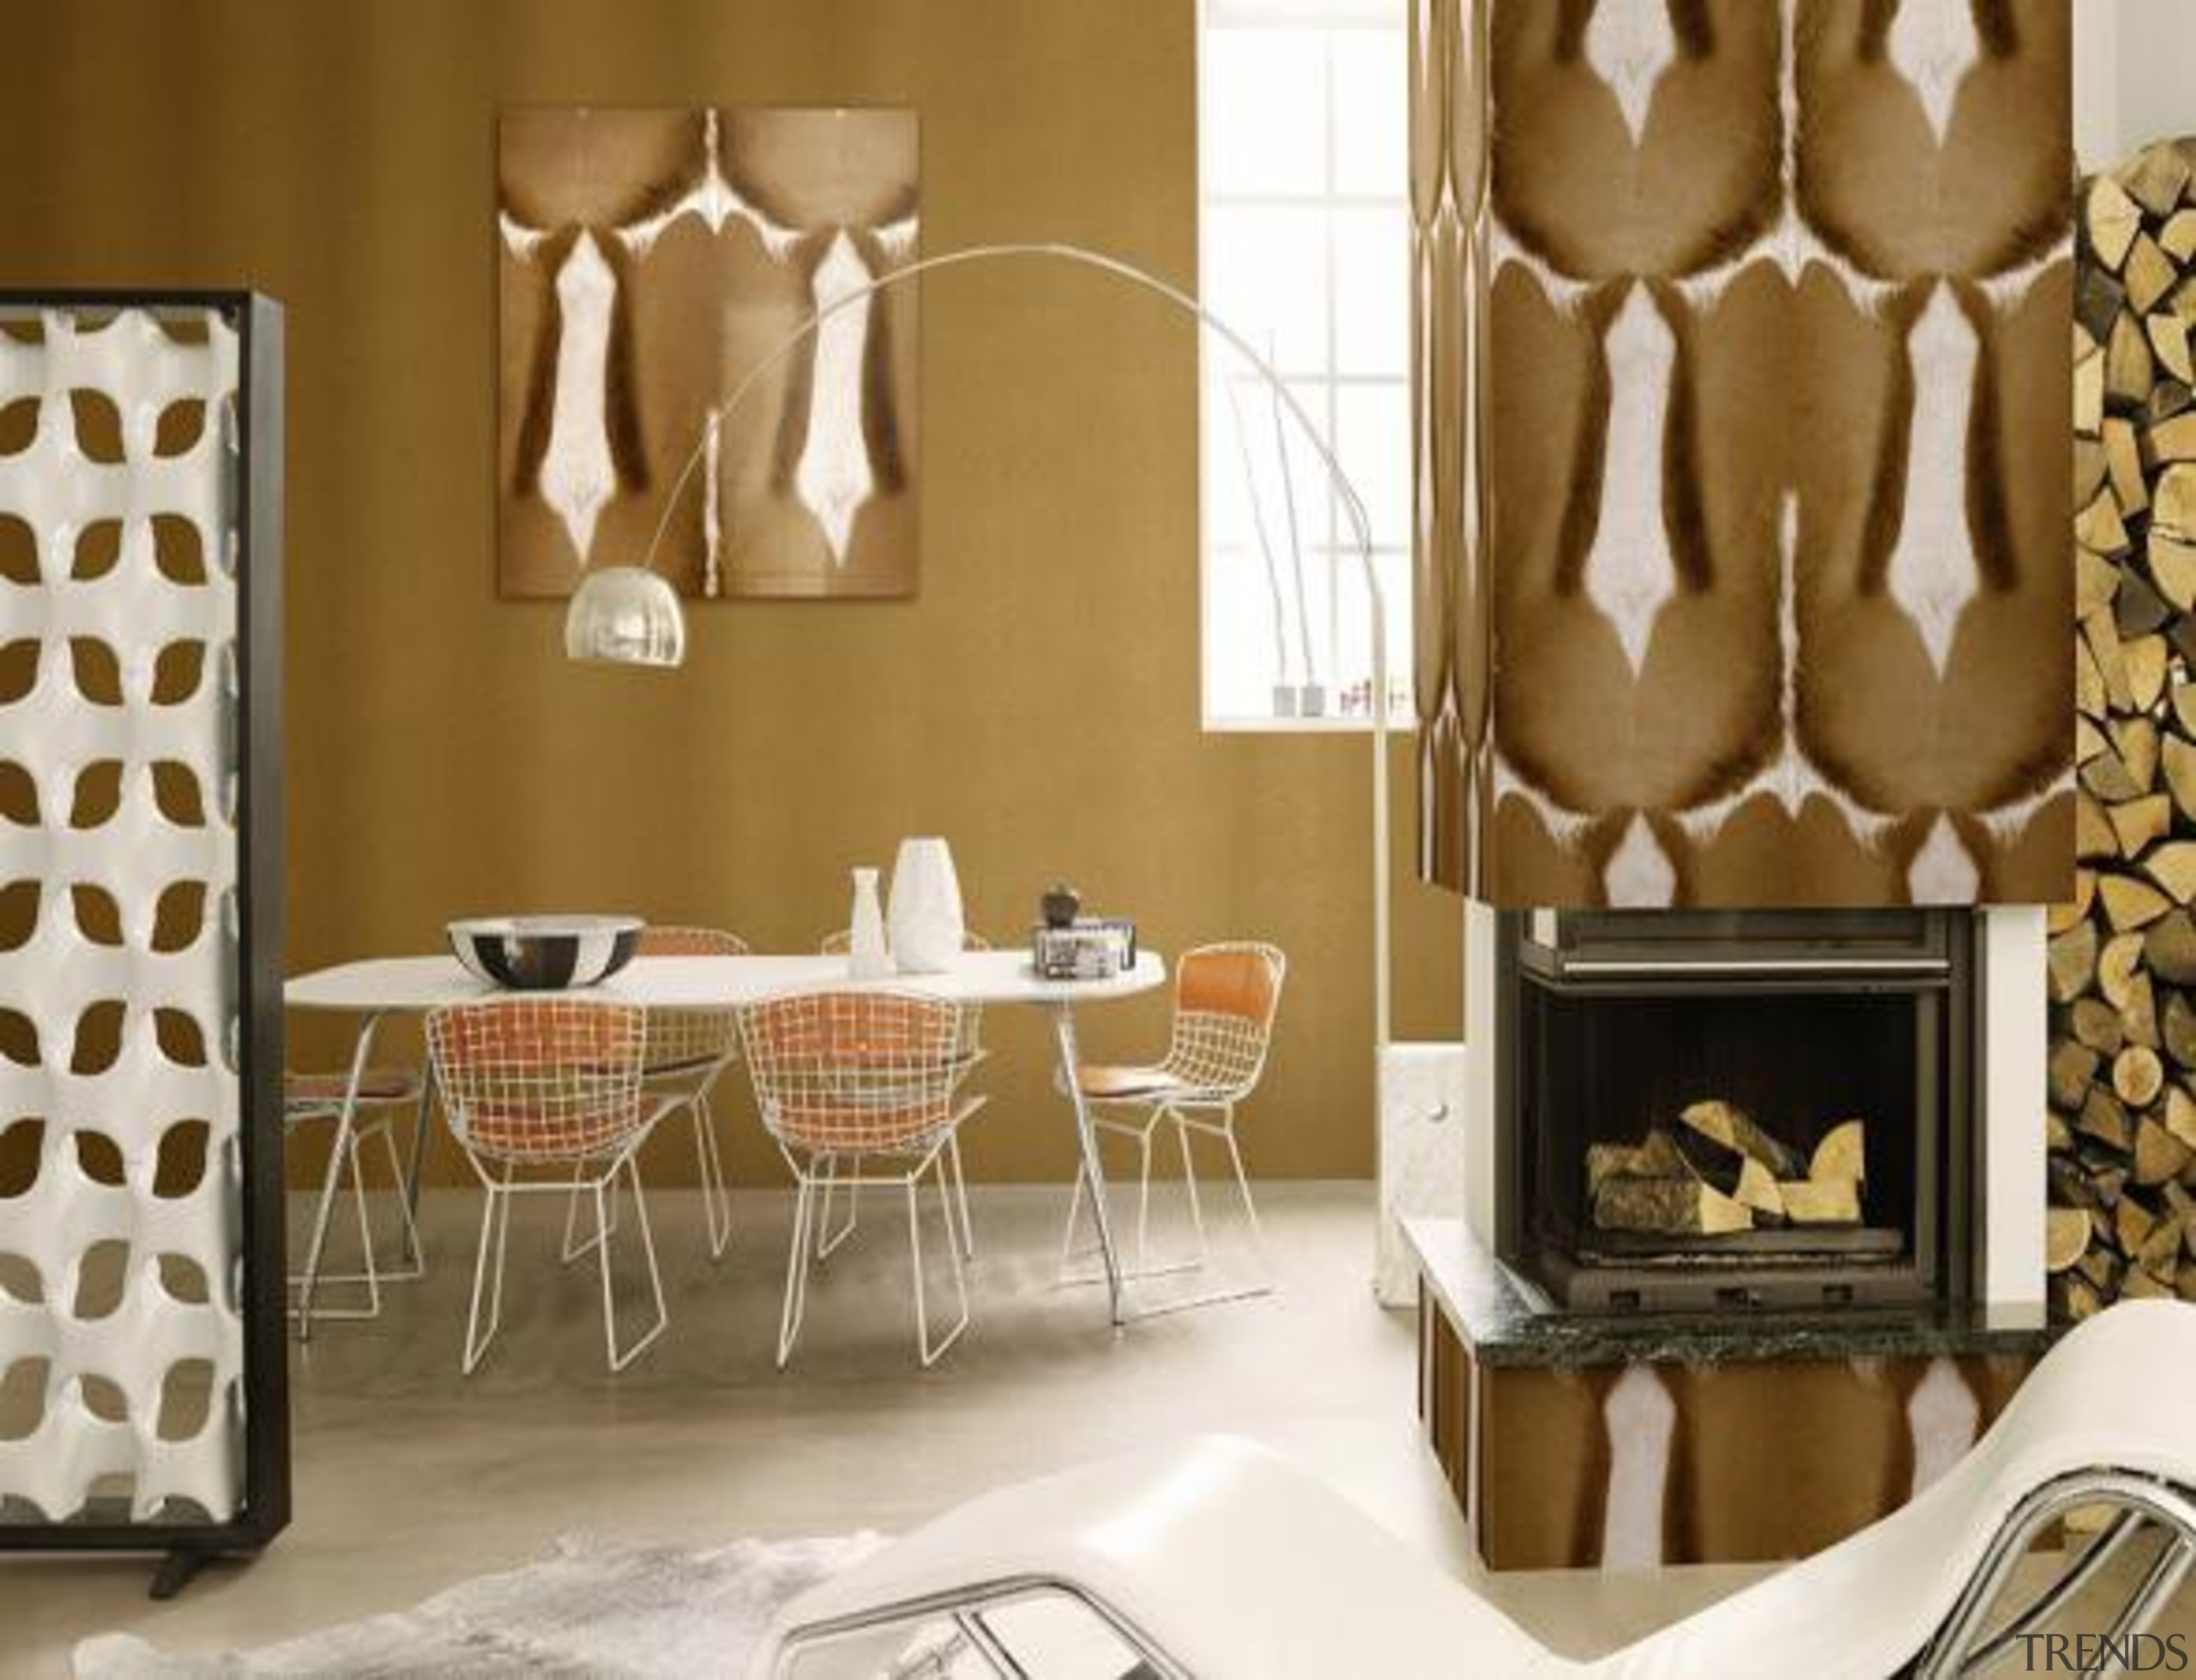 African Queen Range - African Queen Range - chair, dining room, furniture, interior design, living room, room, table, wall, brown, white